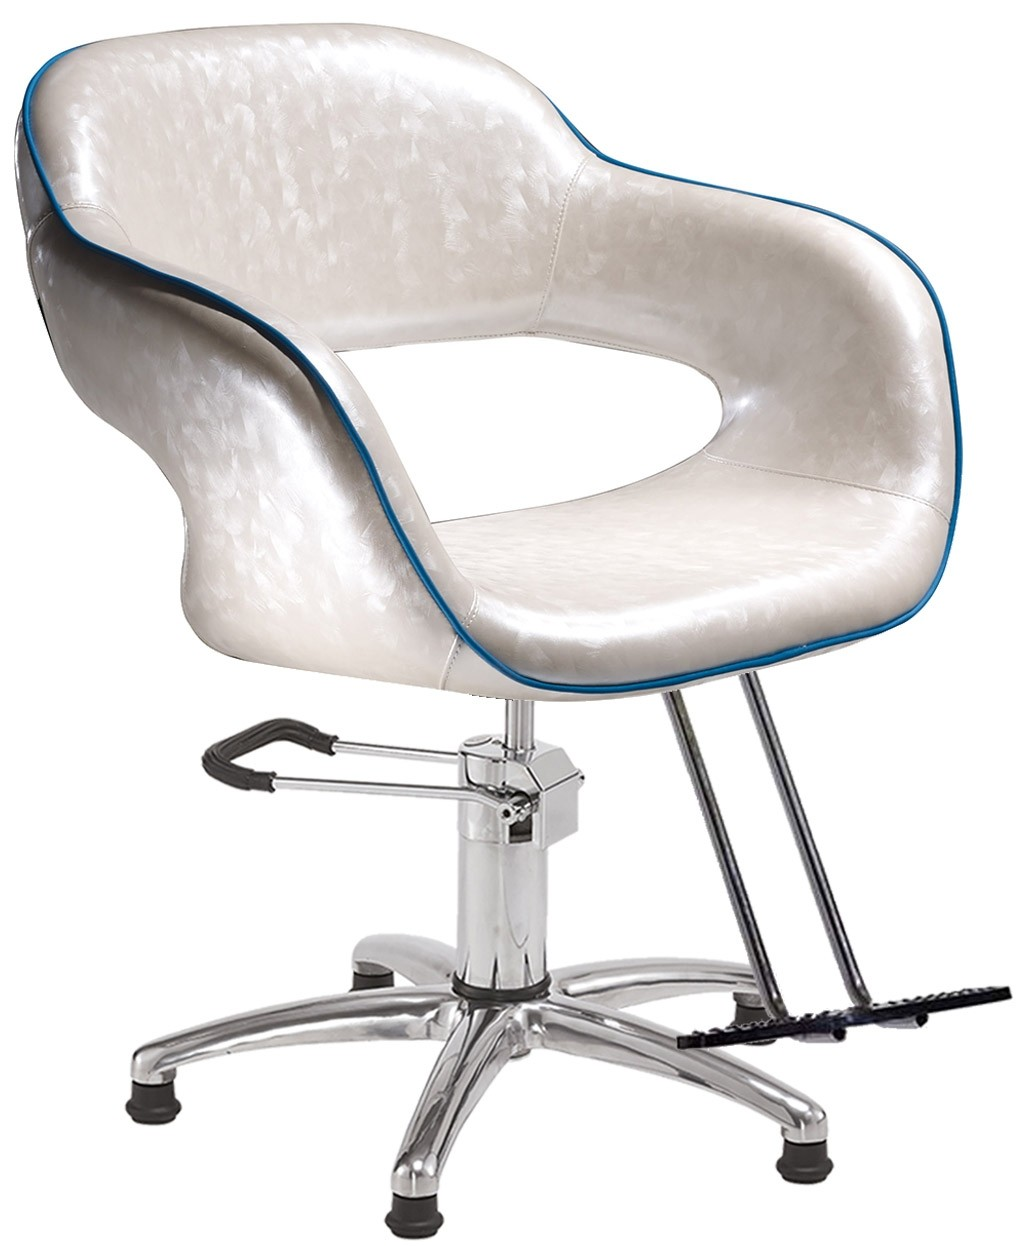 Salon Ambience SH-315 Vanessa Styling Chair